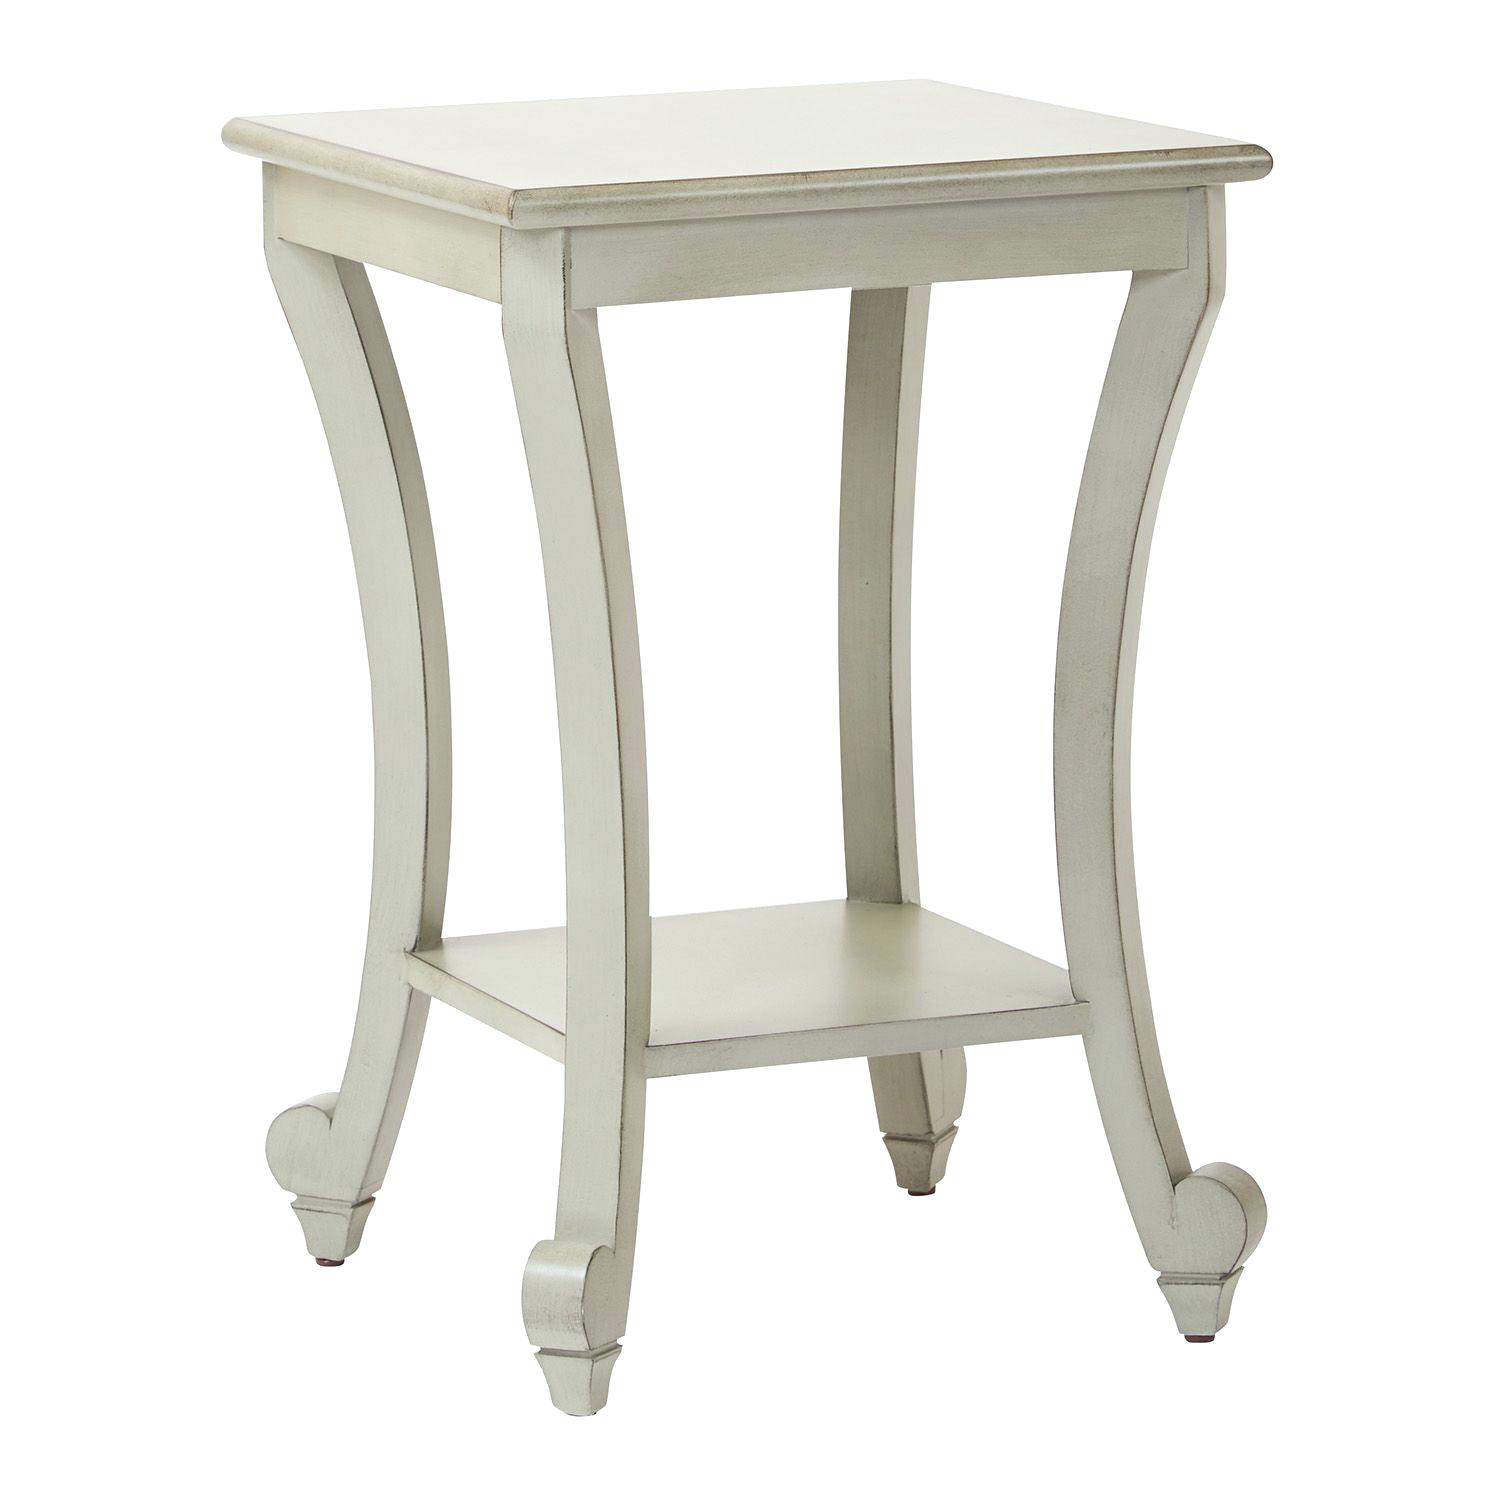 pier accent tables table mosaic end imports spindle wood design outdoor target threshold marble top oriental desk lamp piece nesting set pottery barn black dining winsome